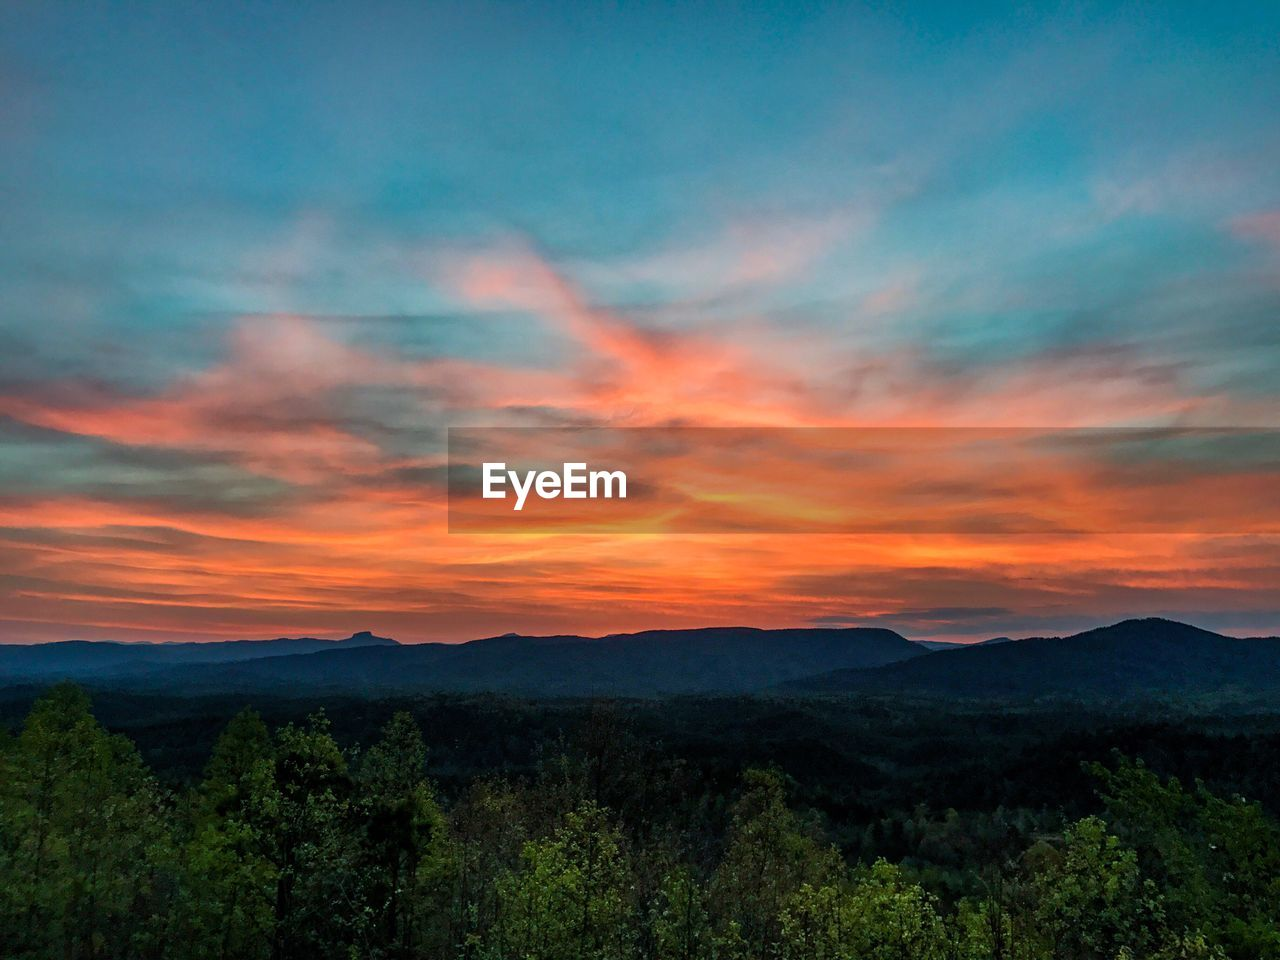 beauty in nature, nature, sunset, mountain, scenics, tranquil scene, landscape, sky, tranquility, no people, tree, forest, outdoors, day